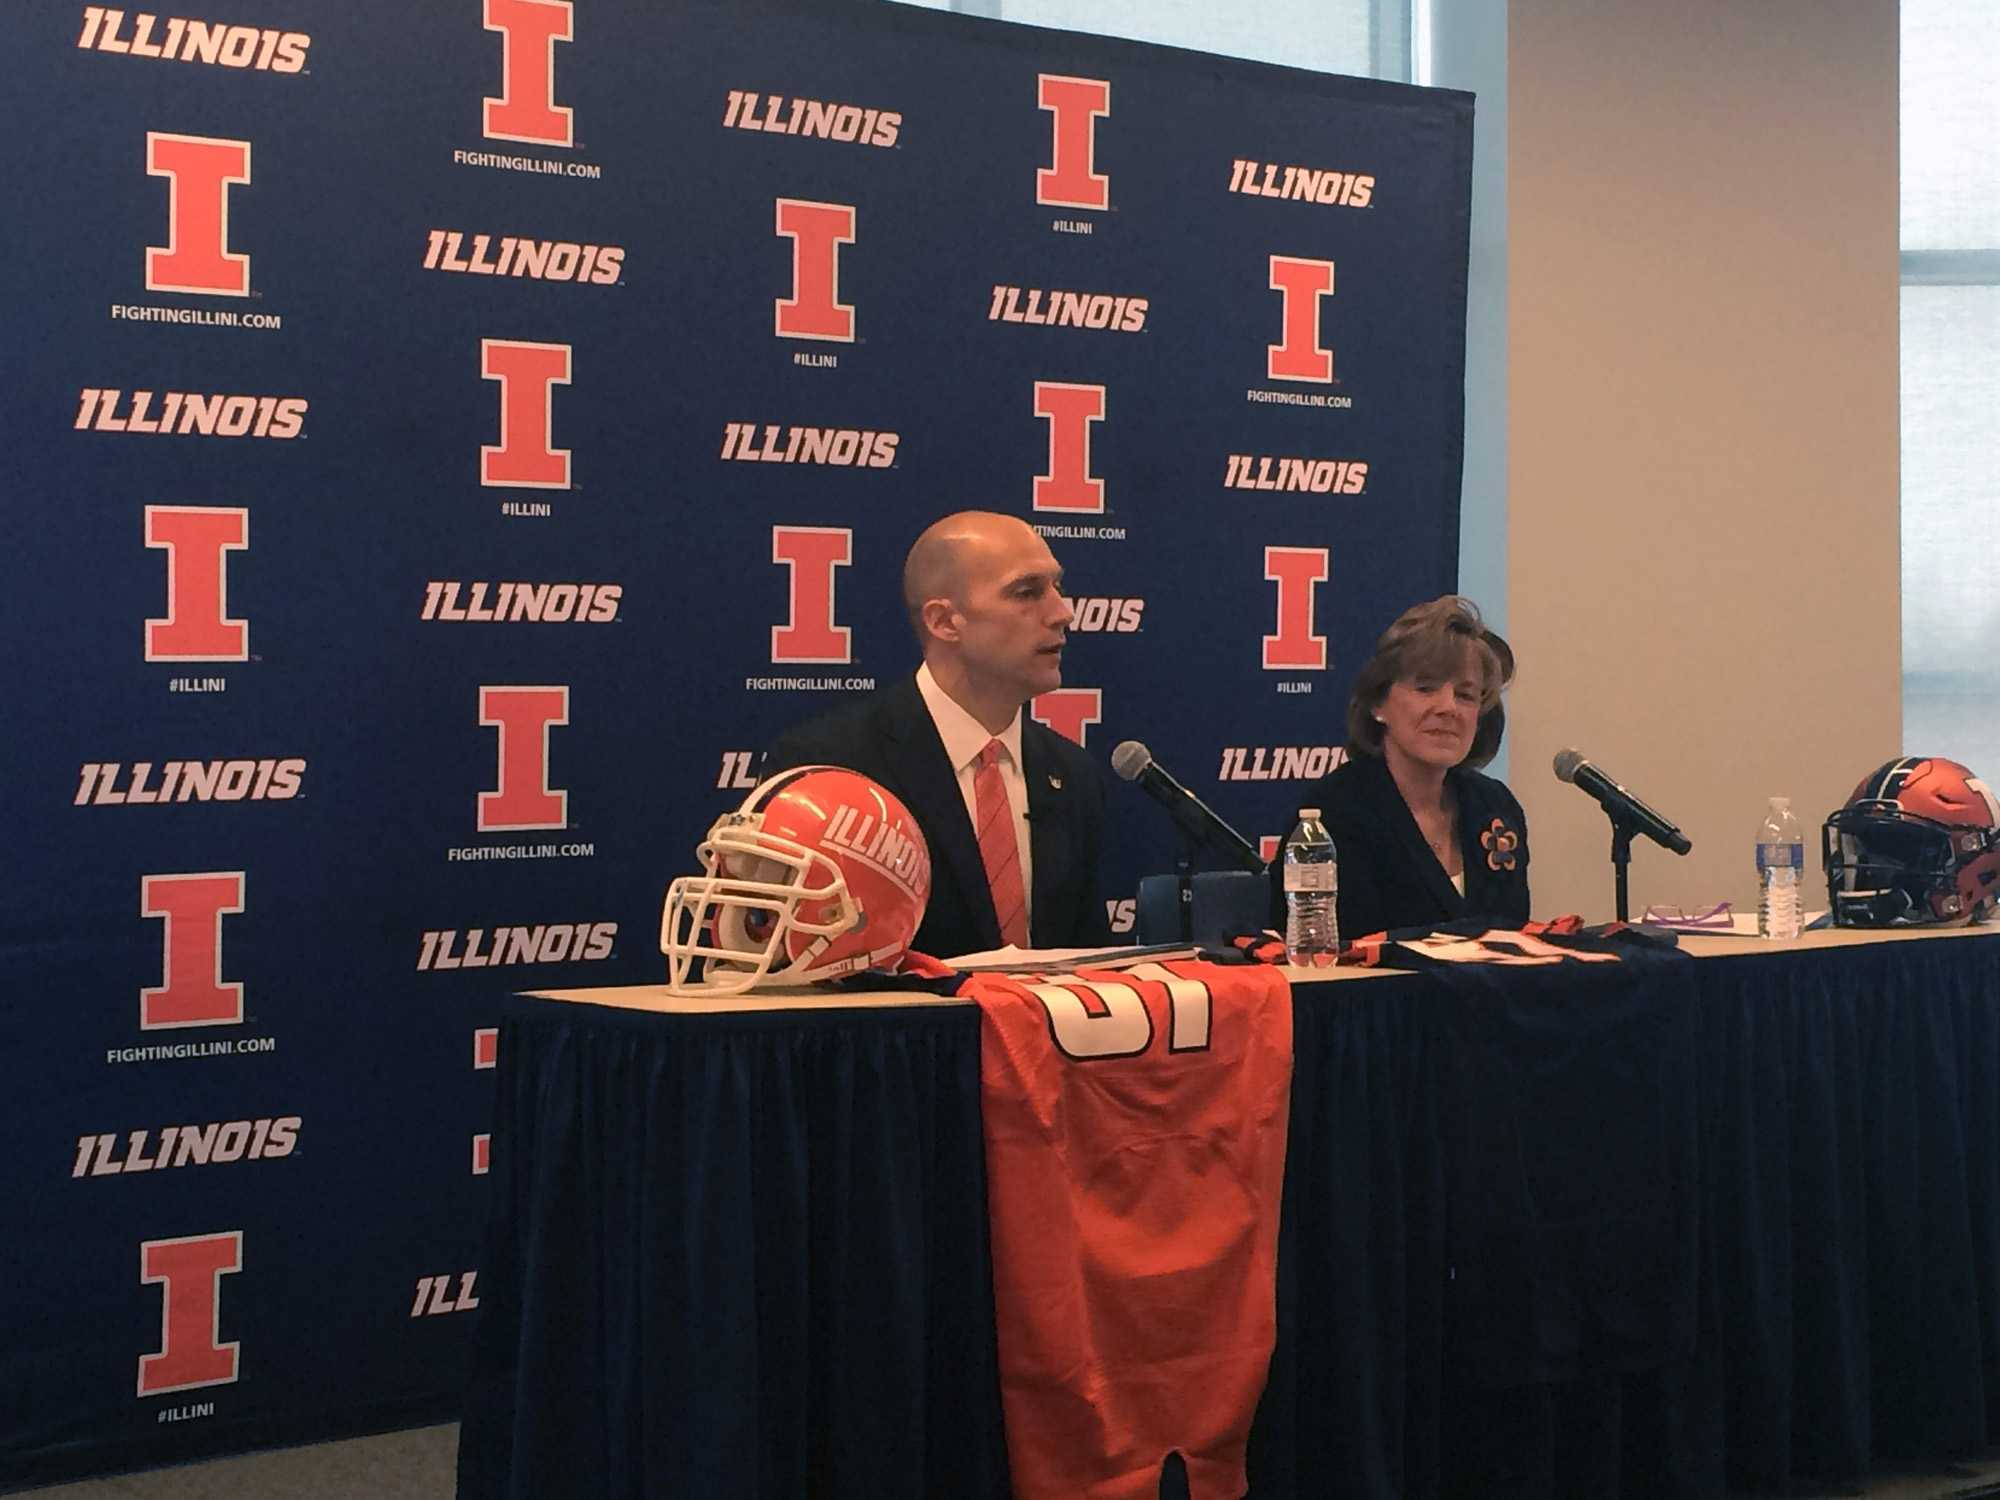 Illini+columnist+Kevin+McCarthy+has+lots+of+time+on+his+hands+after+failing+to+obtain+the+Illinois+AD+job.